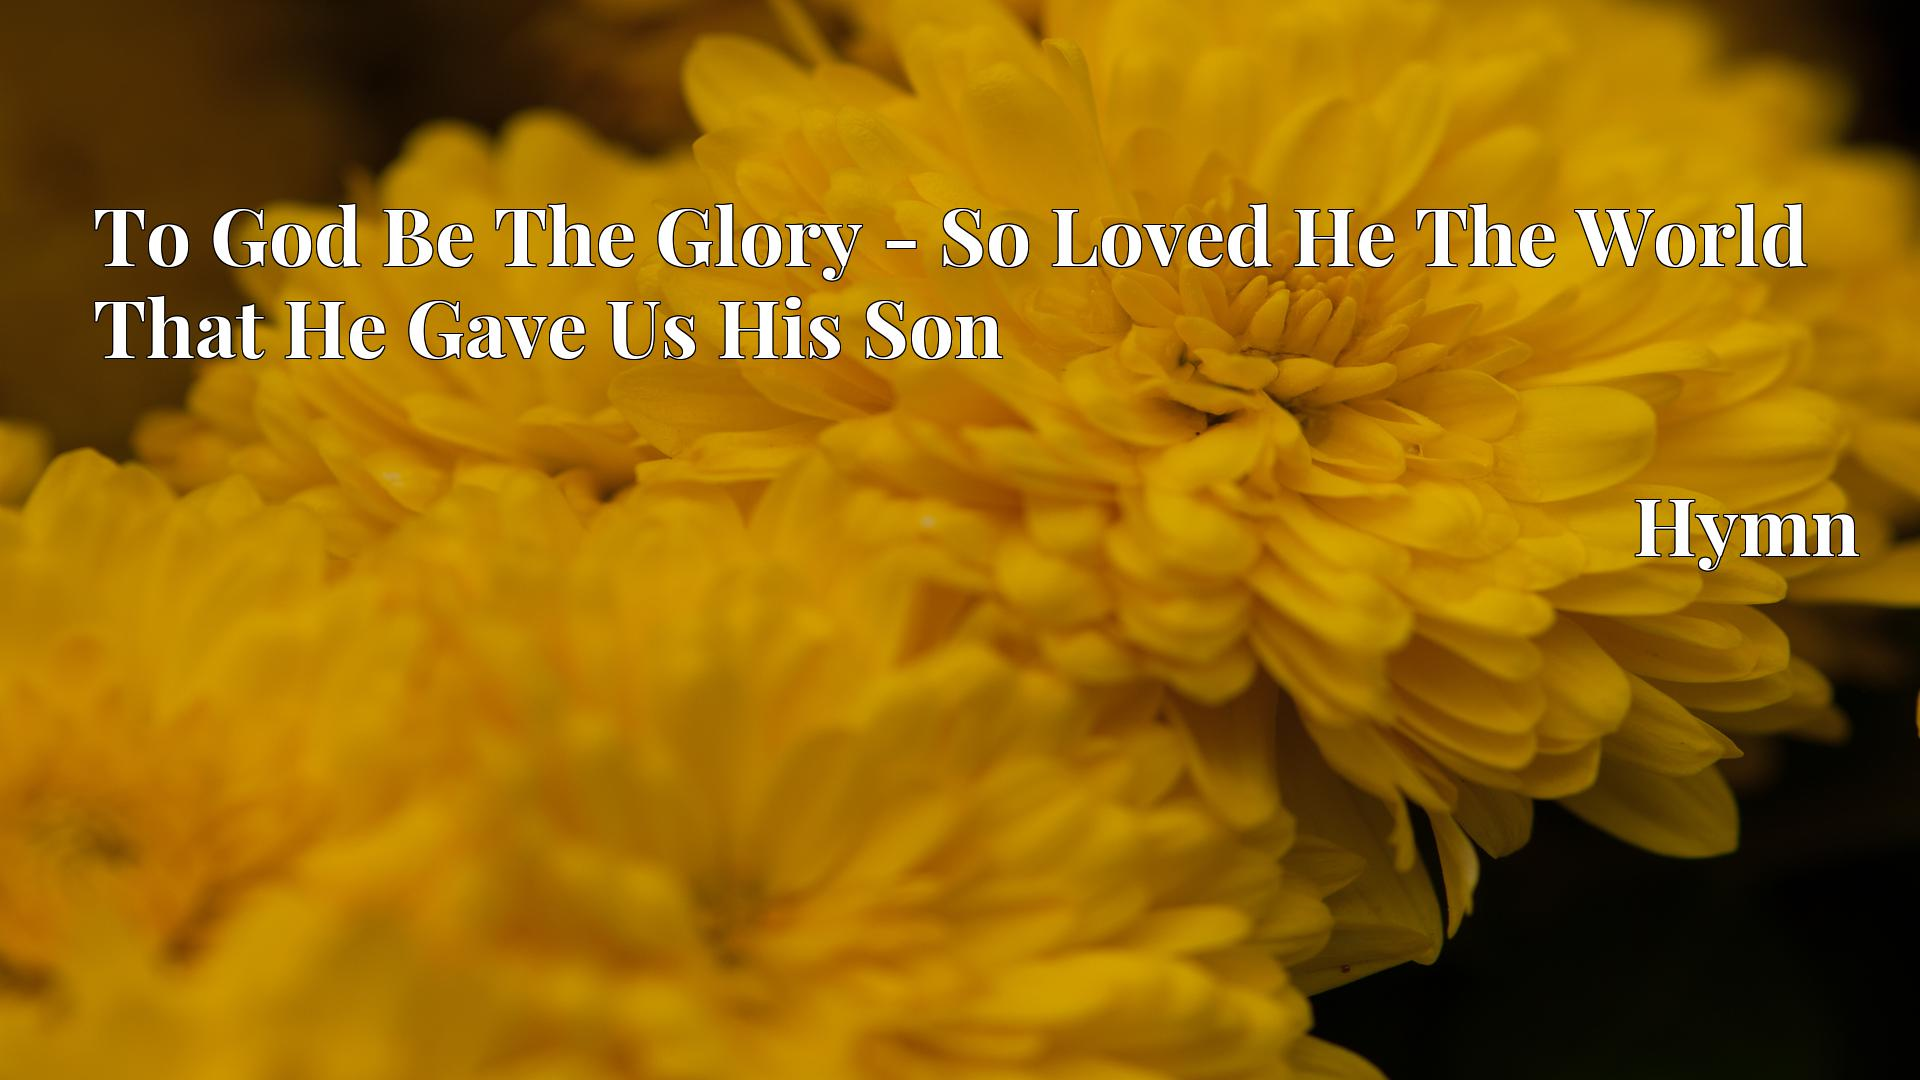 To God Be The Glory - So Loved He The World That He Gave Us His Son Hymn